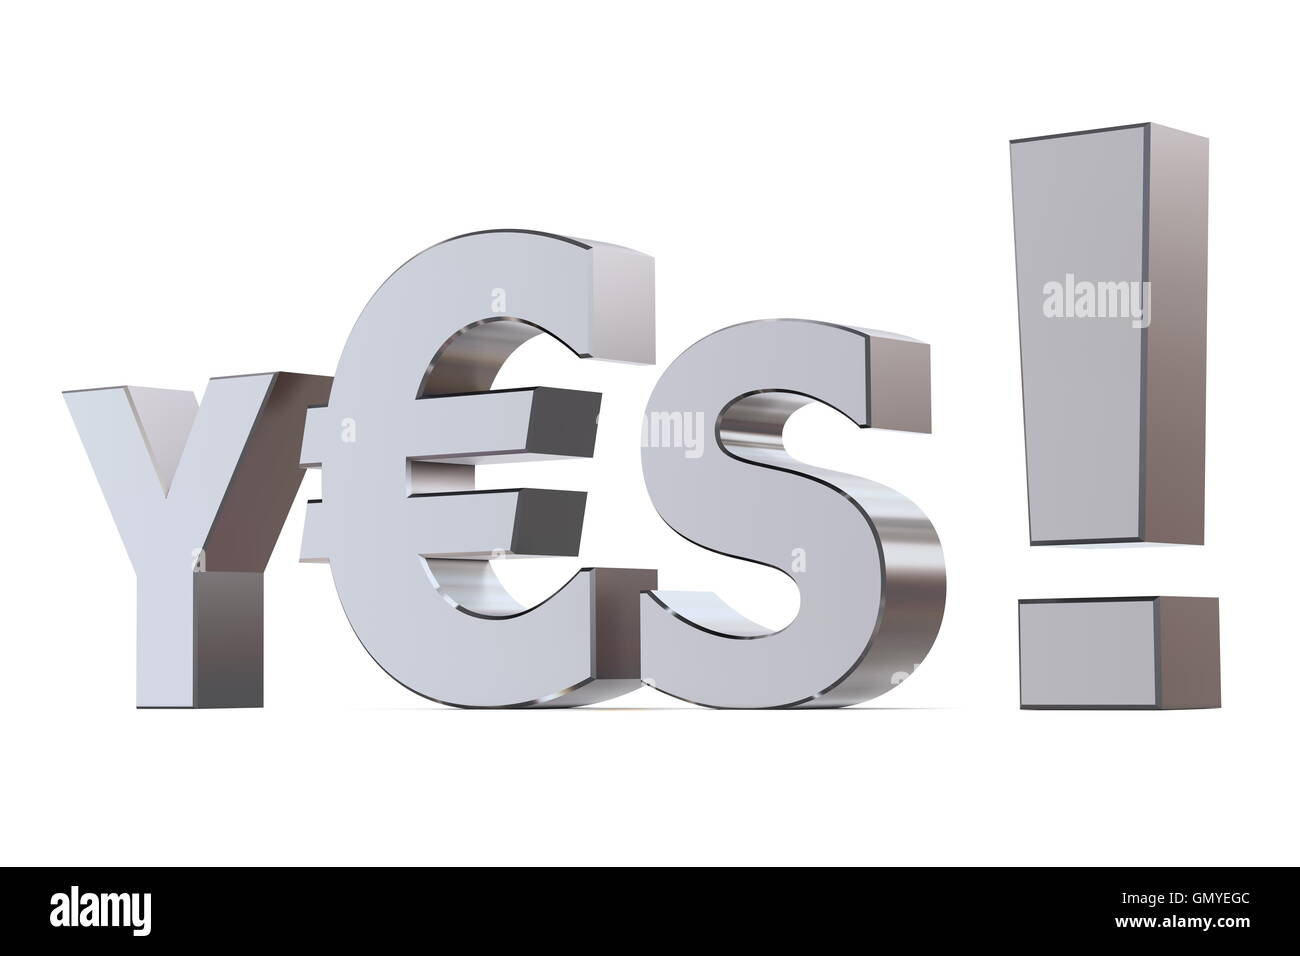 Yes to Euro - Stock Image